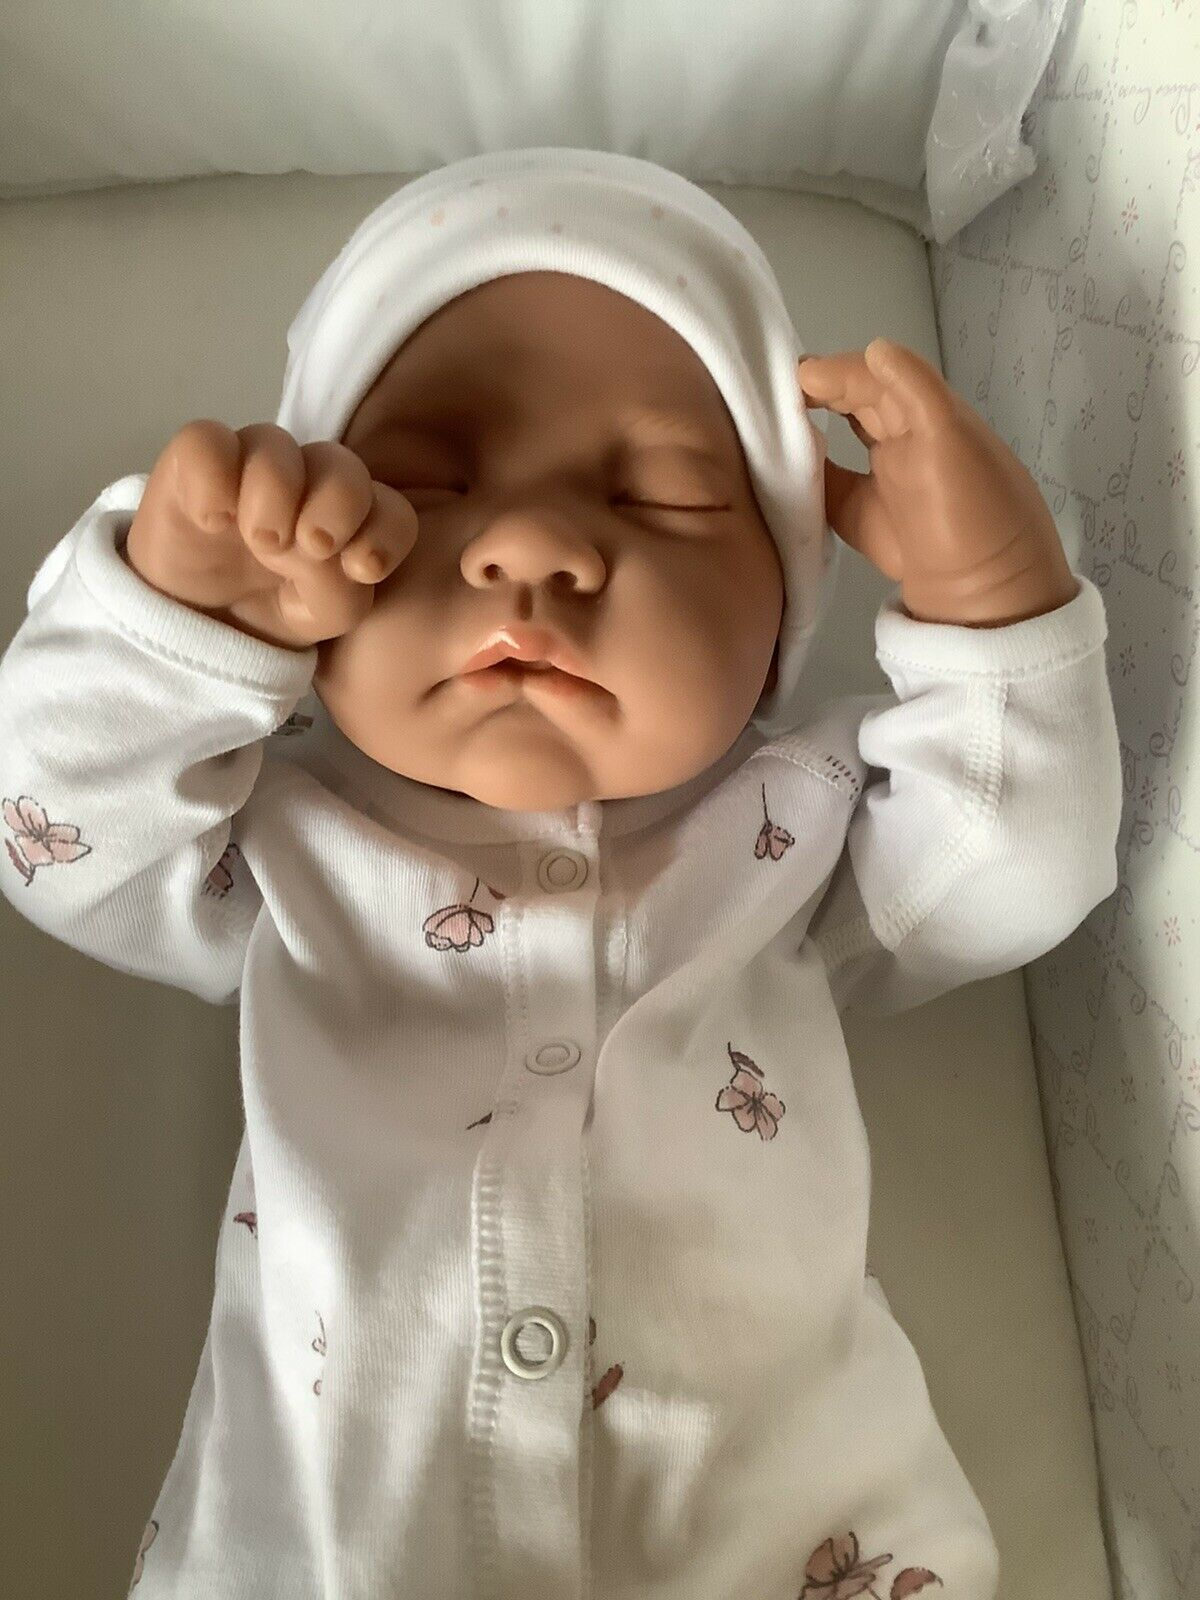 Beautiful Antonio Juan Baby Doll In Pink/White Premature Baby Outfit + Blanket